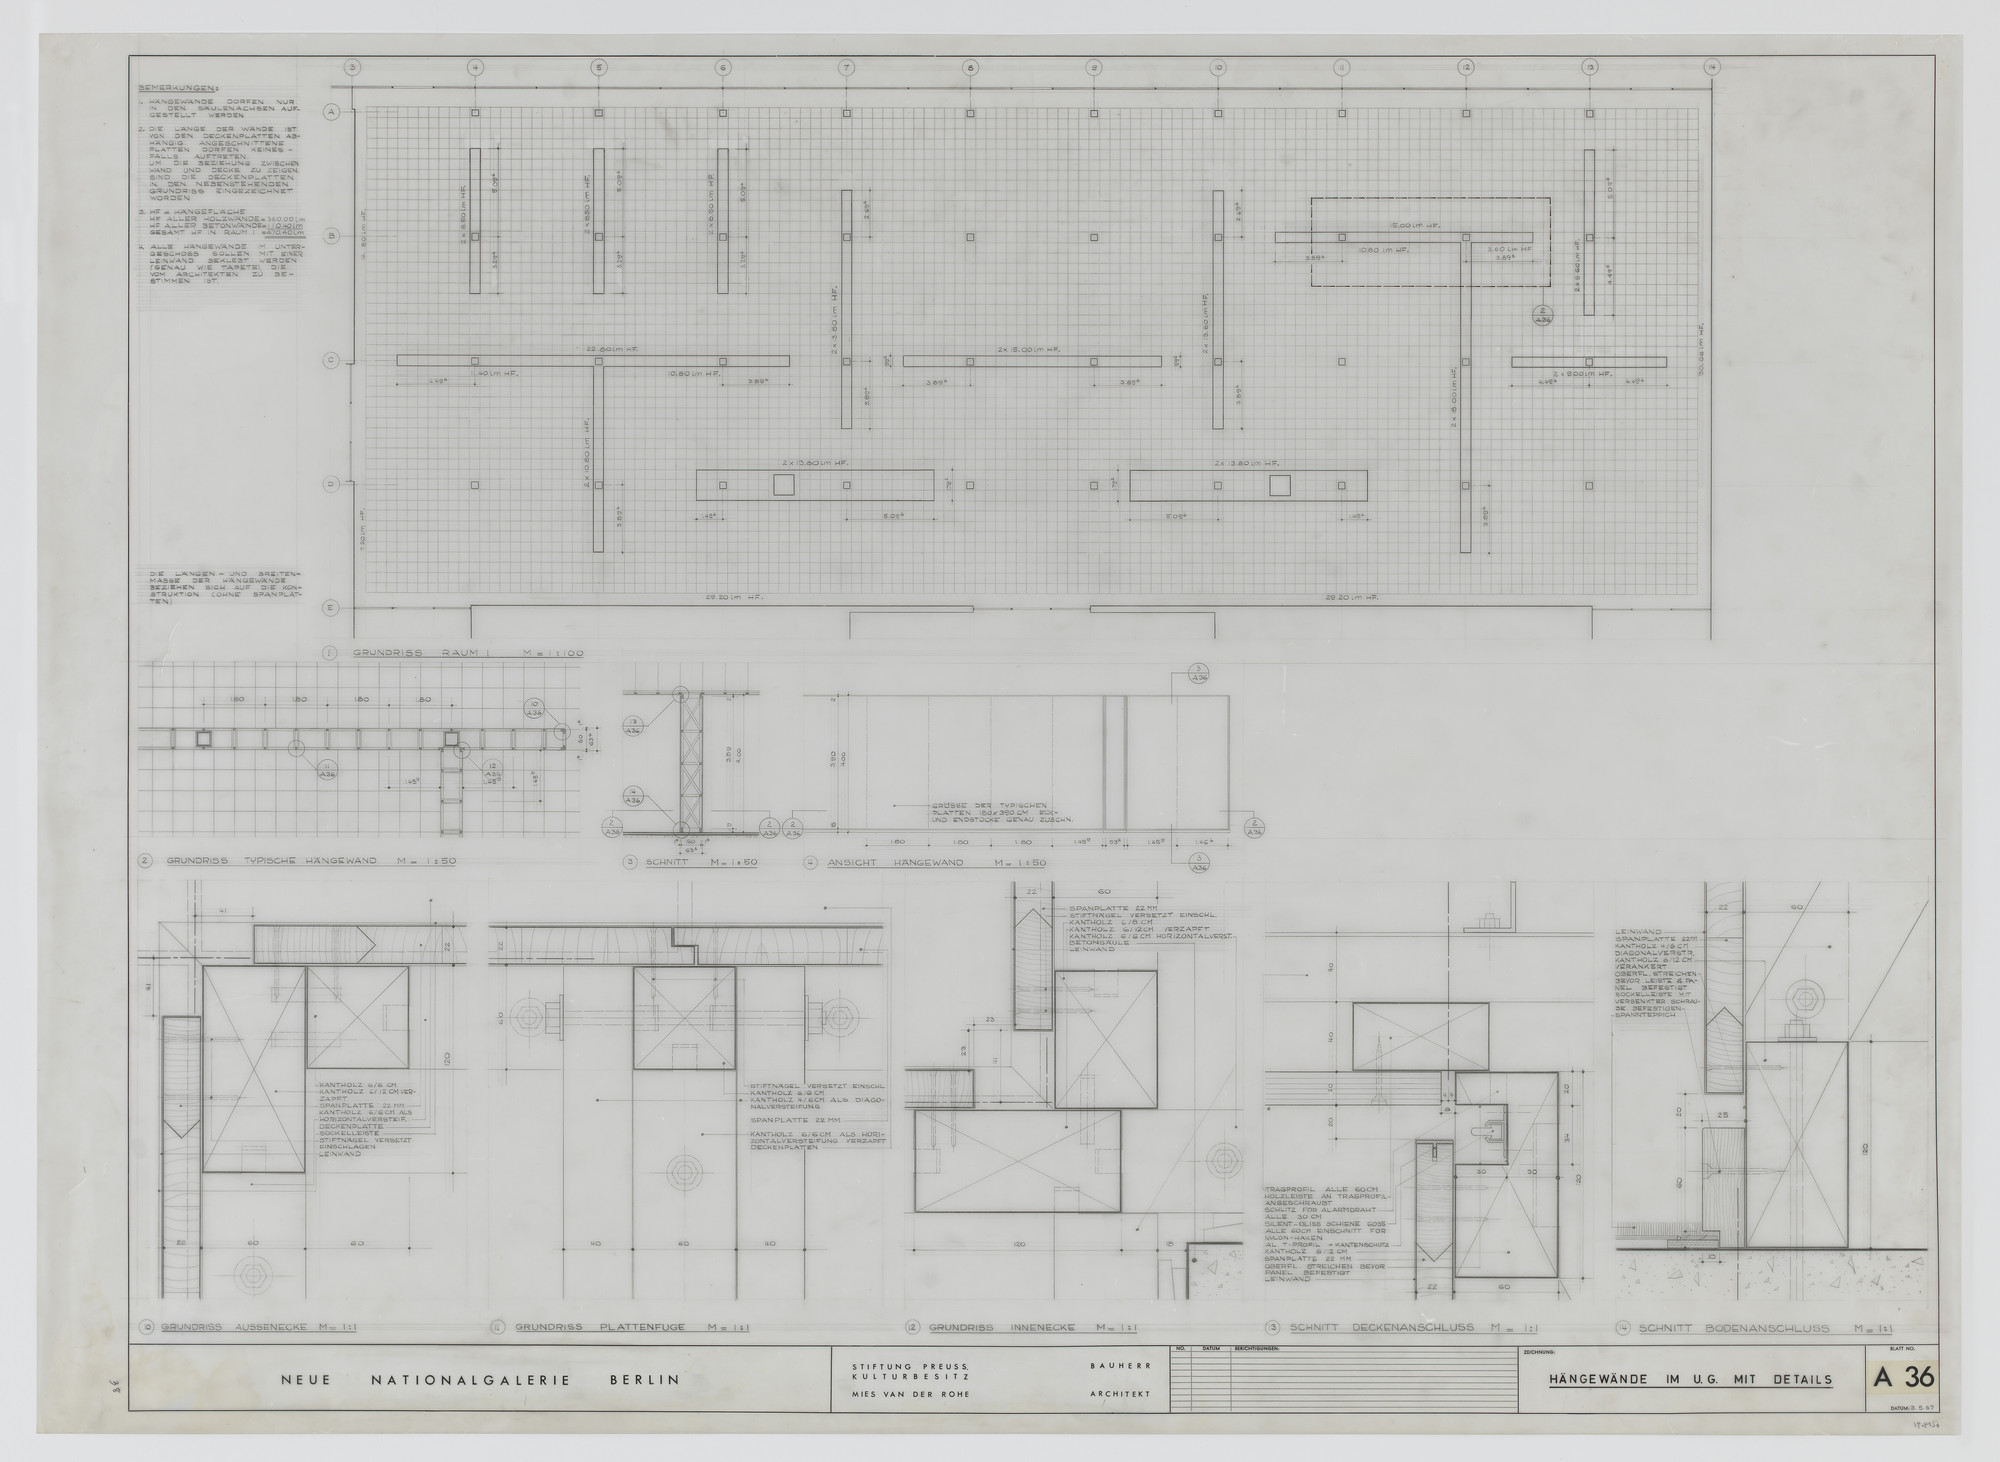 Ludwig Mies van der Rohe. New National Gallery, Berlin, Germany (Plans, sections. Suspended walls on lower level with details). 1967